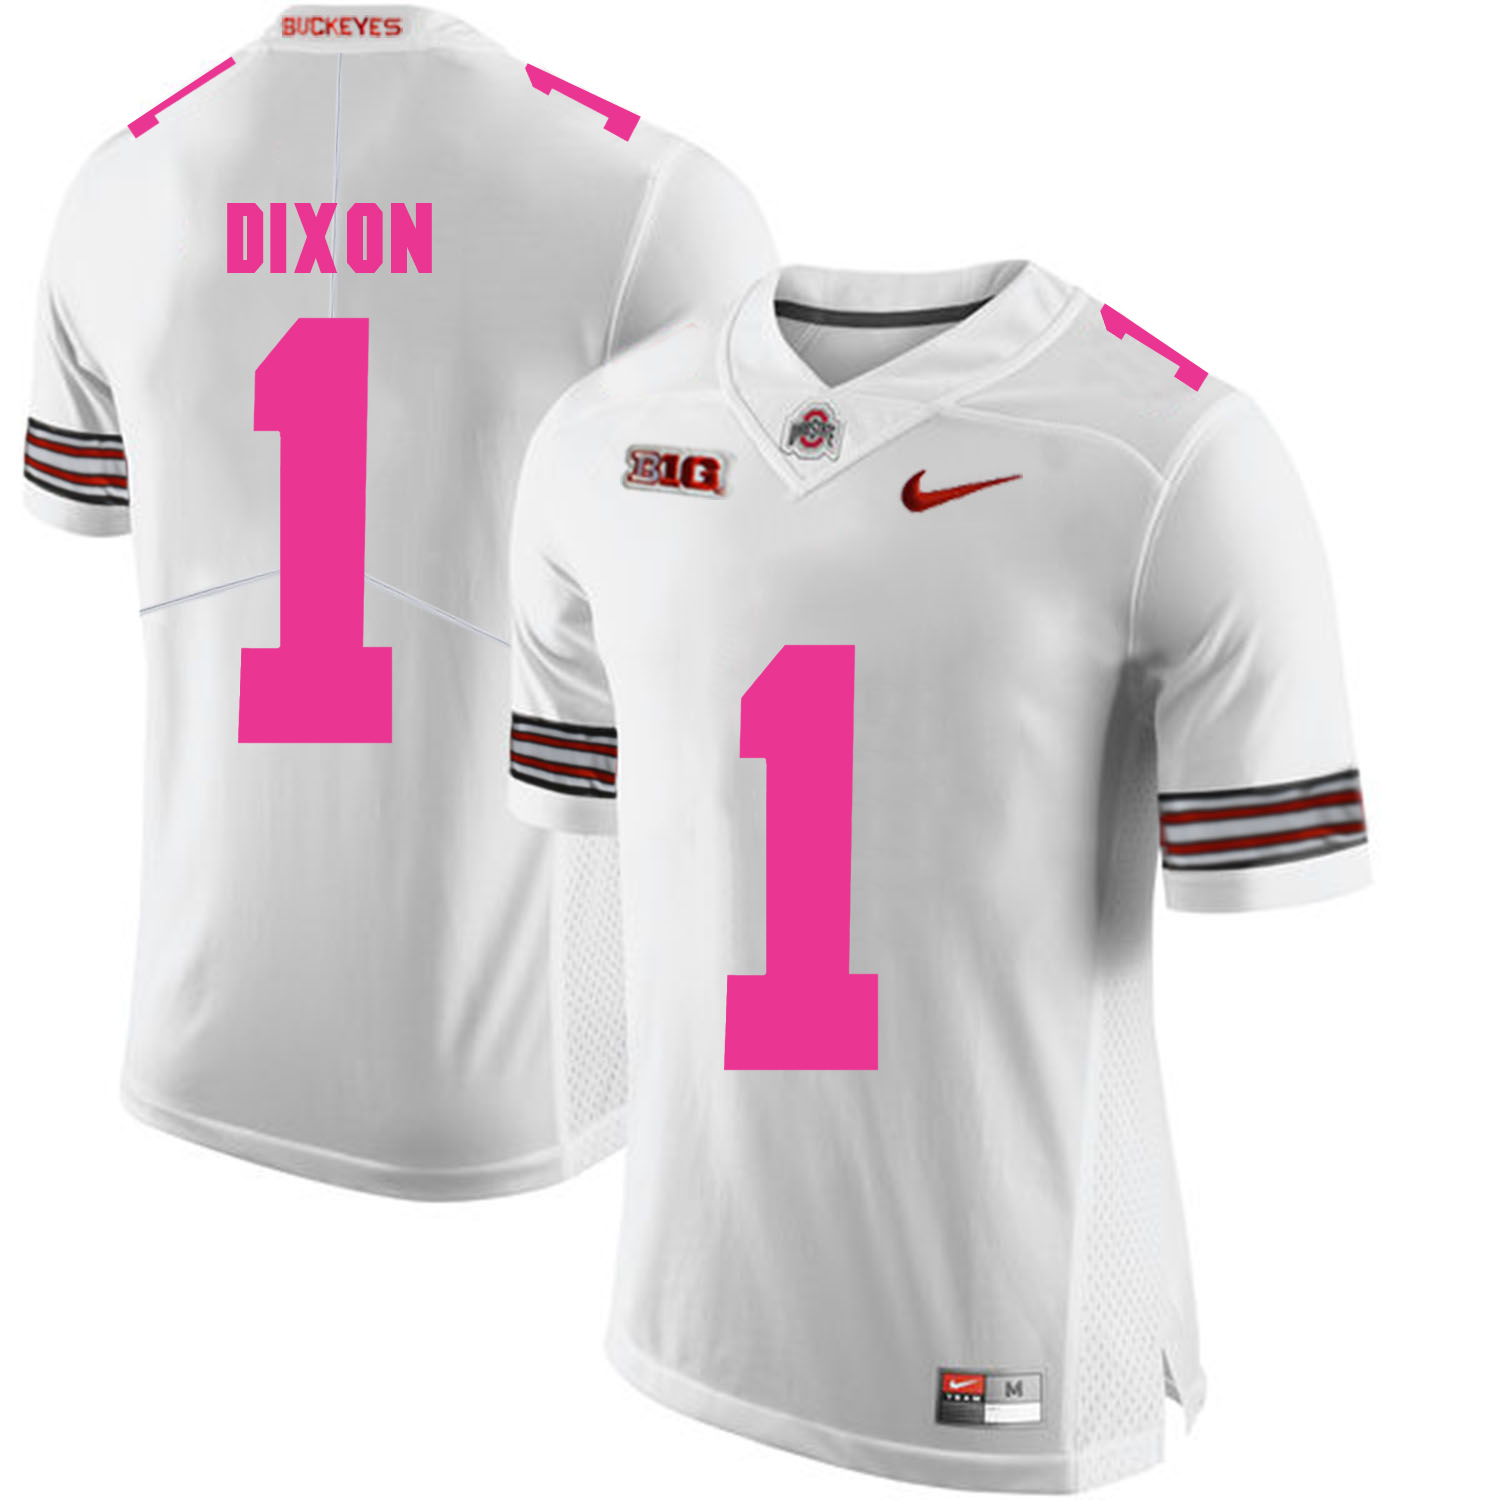 Ohio State Buckeyes 1 Johnnie Dixon White 2018 Breast Cancer Awareness College Football Jersey